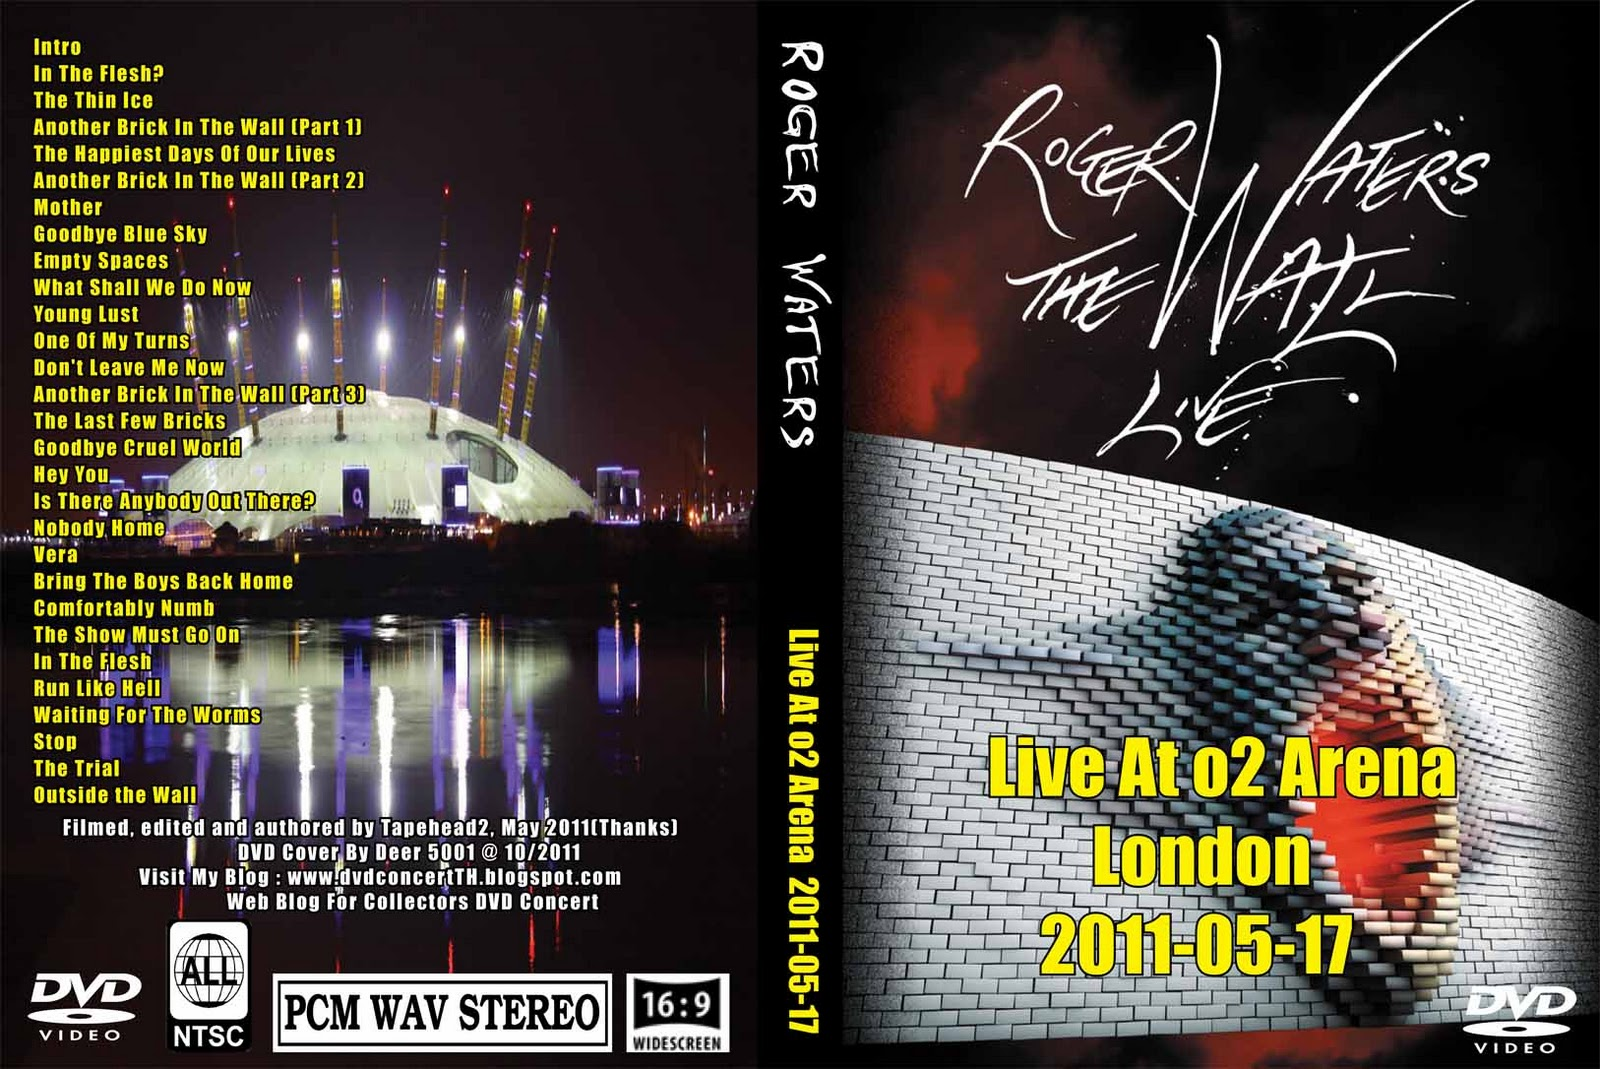 DVD Concert TH Power By Deer 5001: Roger Waters - 2011-05-17 - o2 ...